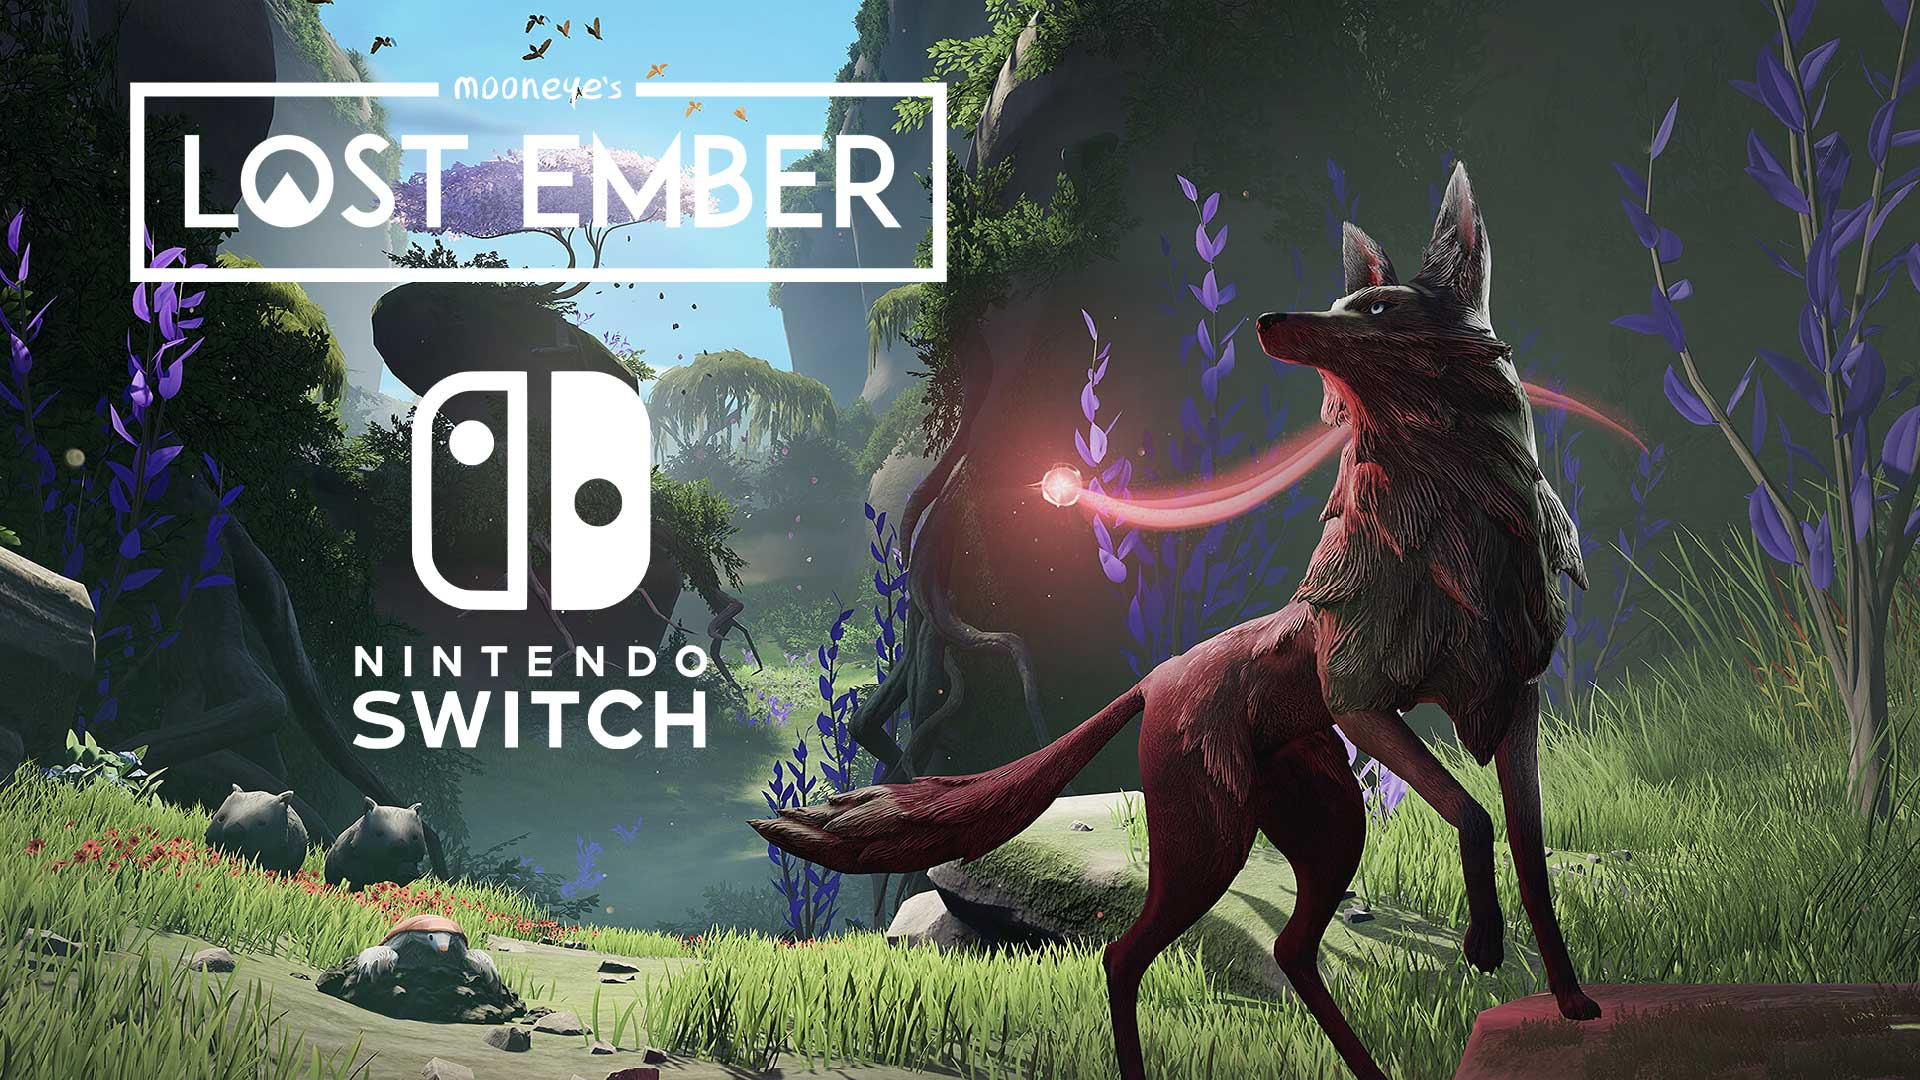 lost ember switch release